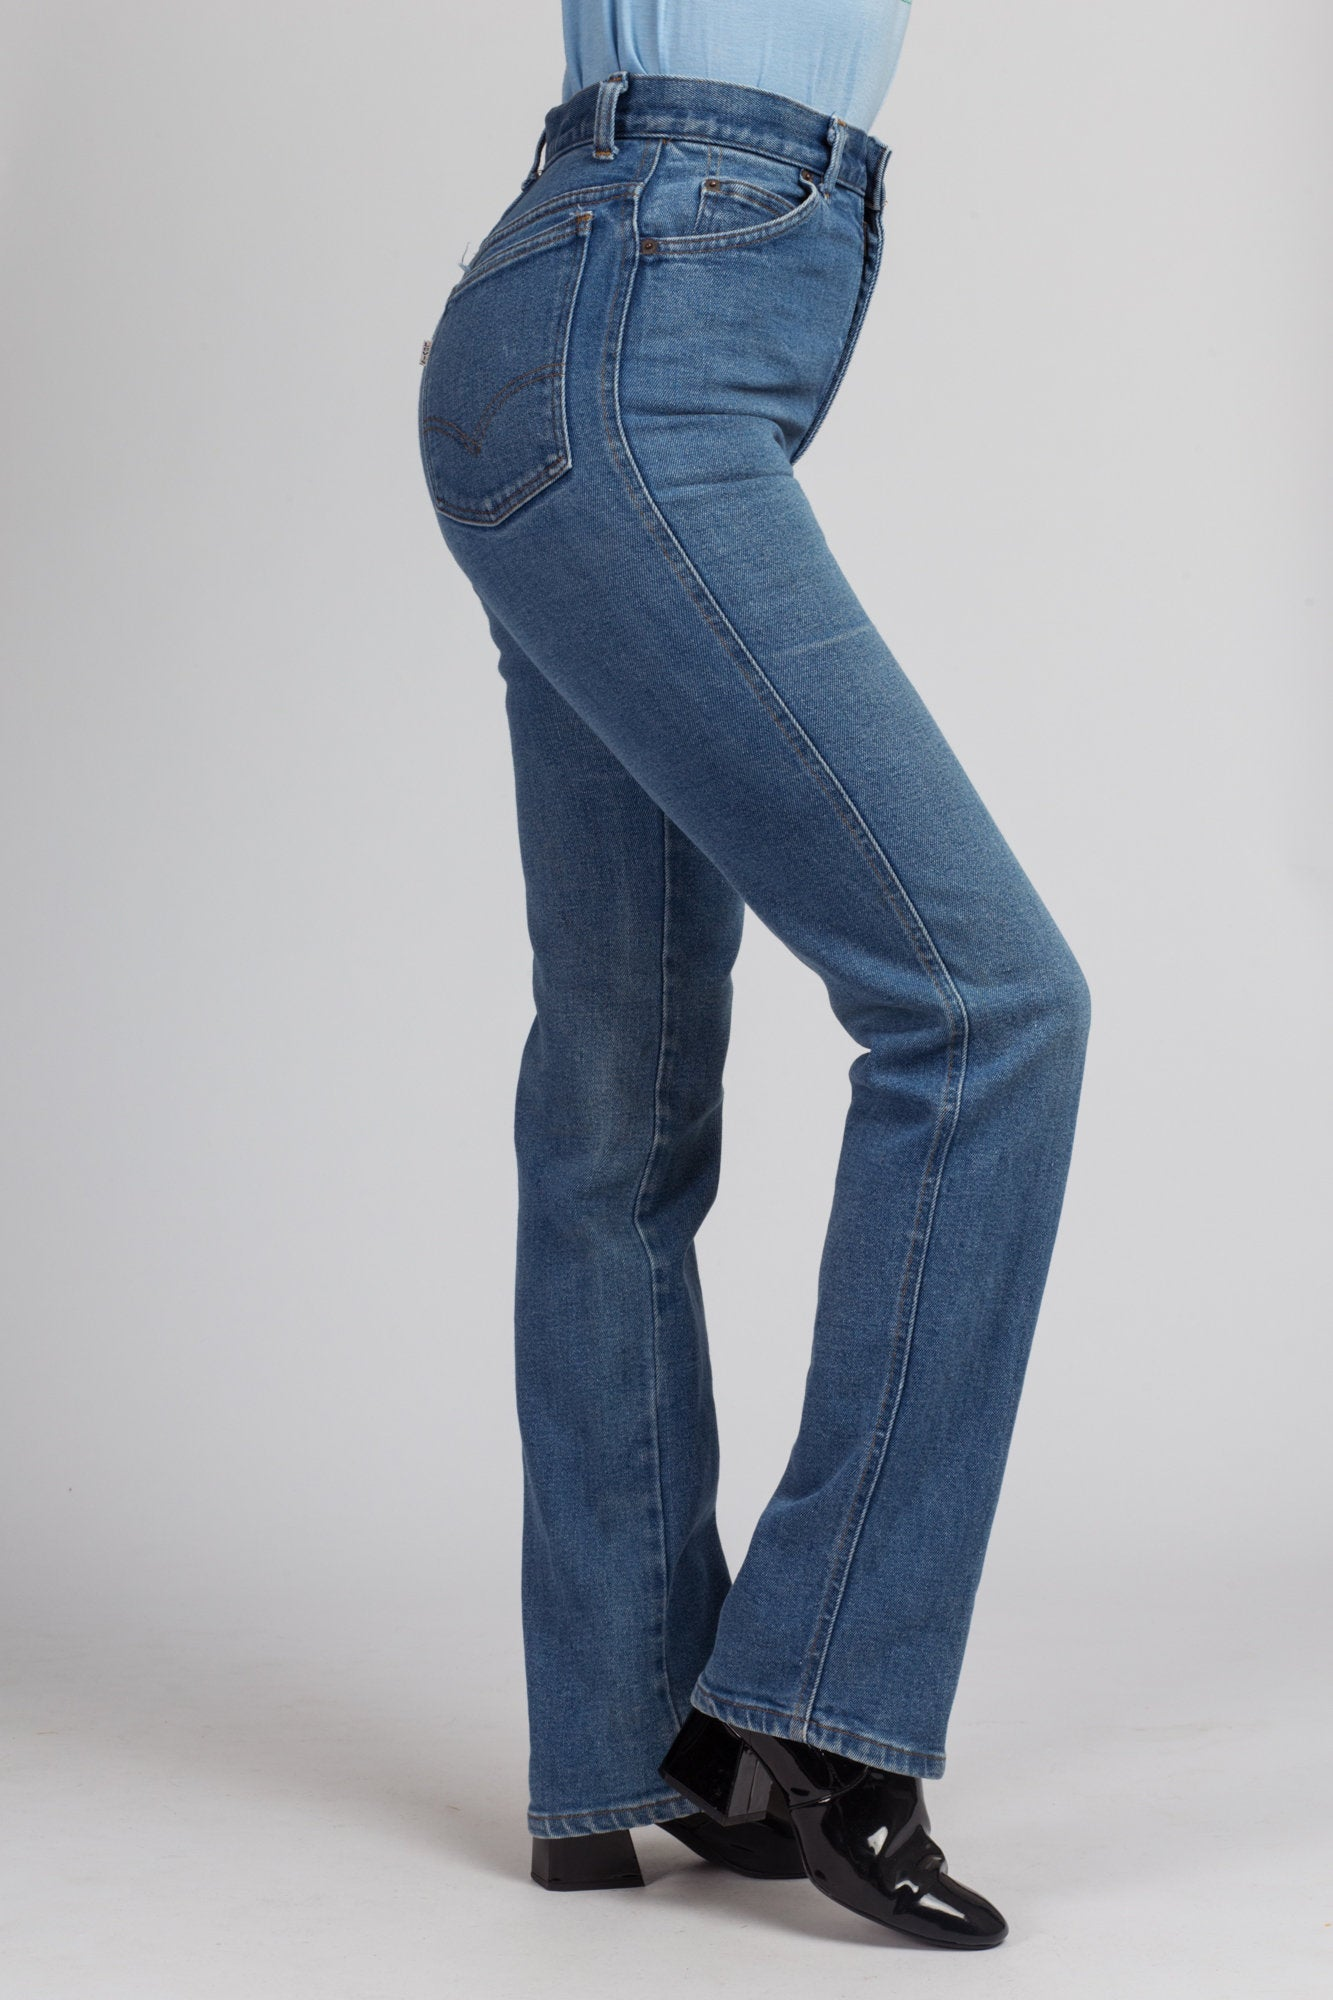 90s Levi's High Waist Jeans - Small, 26""